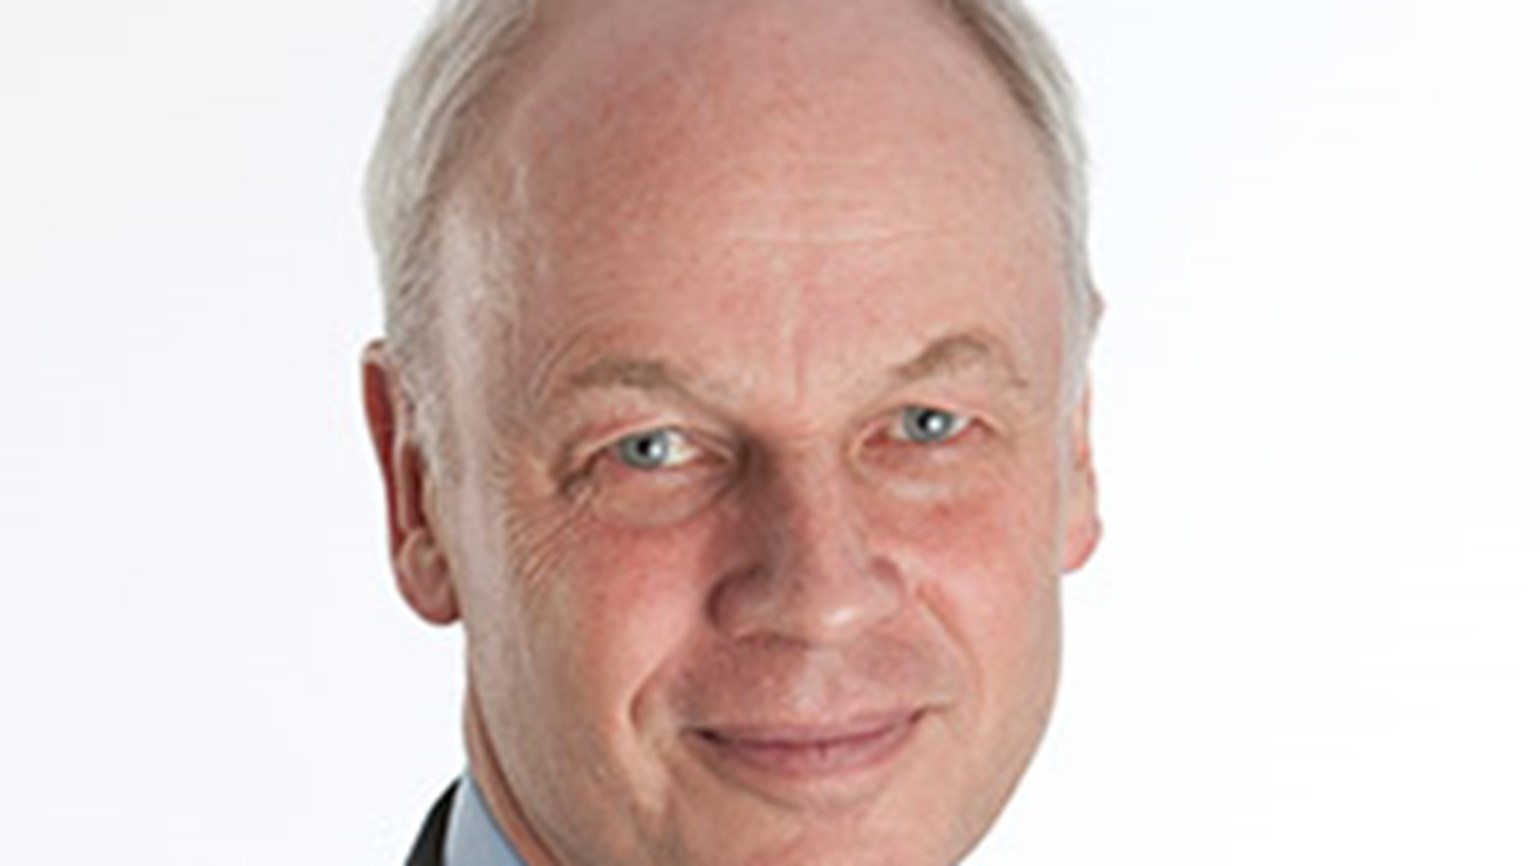 World Travel & Tourism Council's David Scowsill